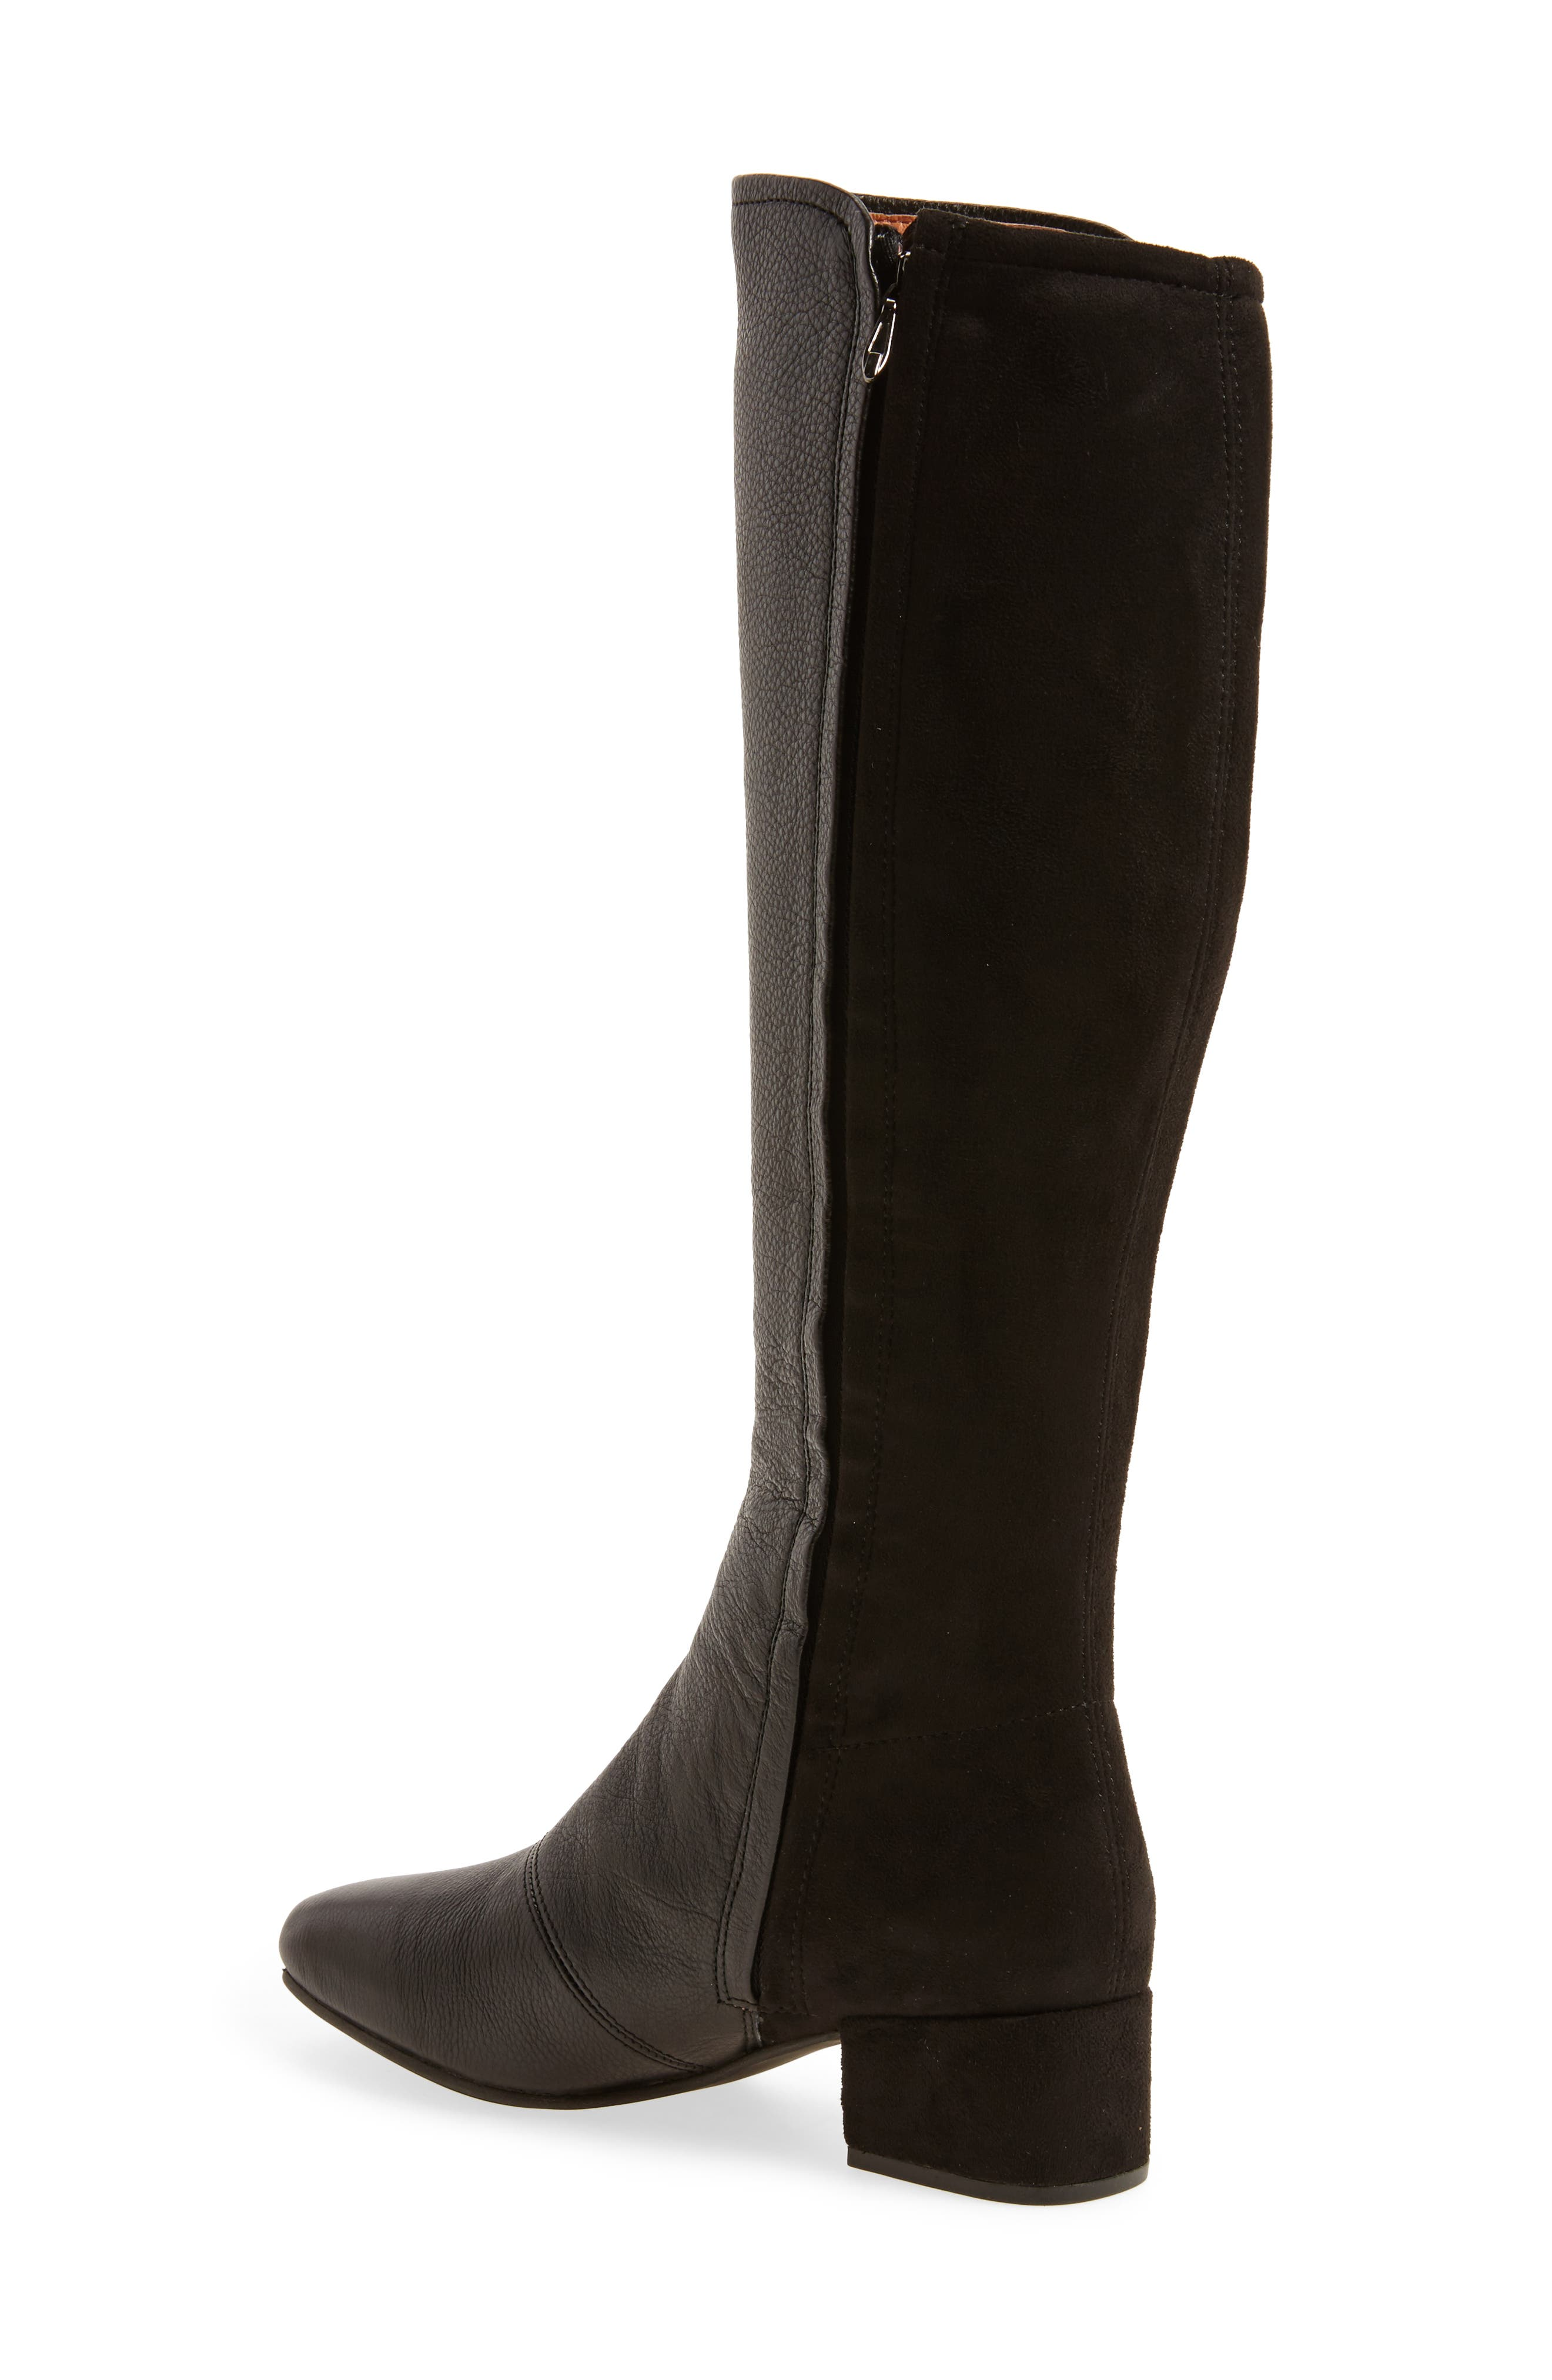 GENTLE SOULS BY KENNETH COLE,                             Ella-Seti Knee High Boot,                             Alternate thumbnail 2, color,                             001